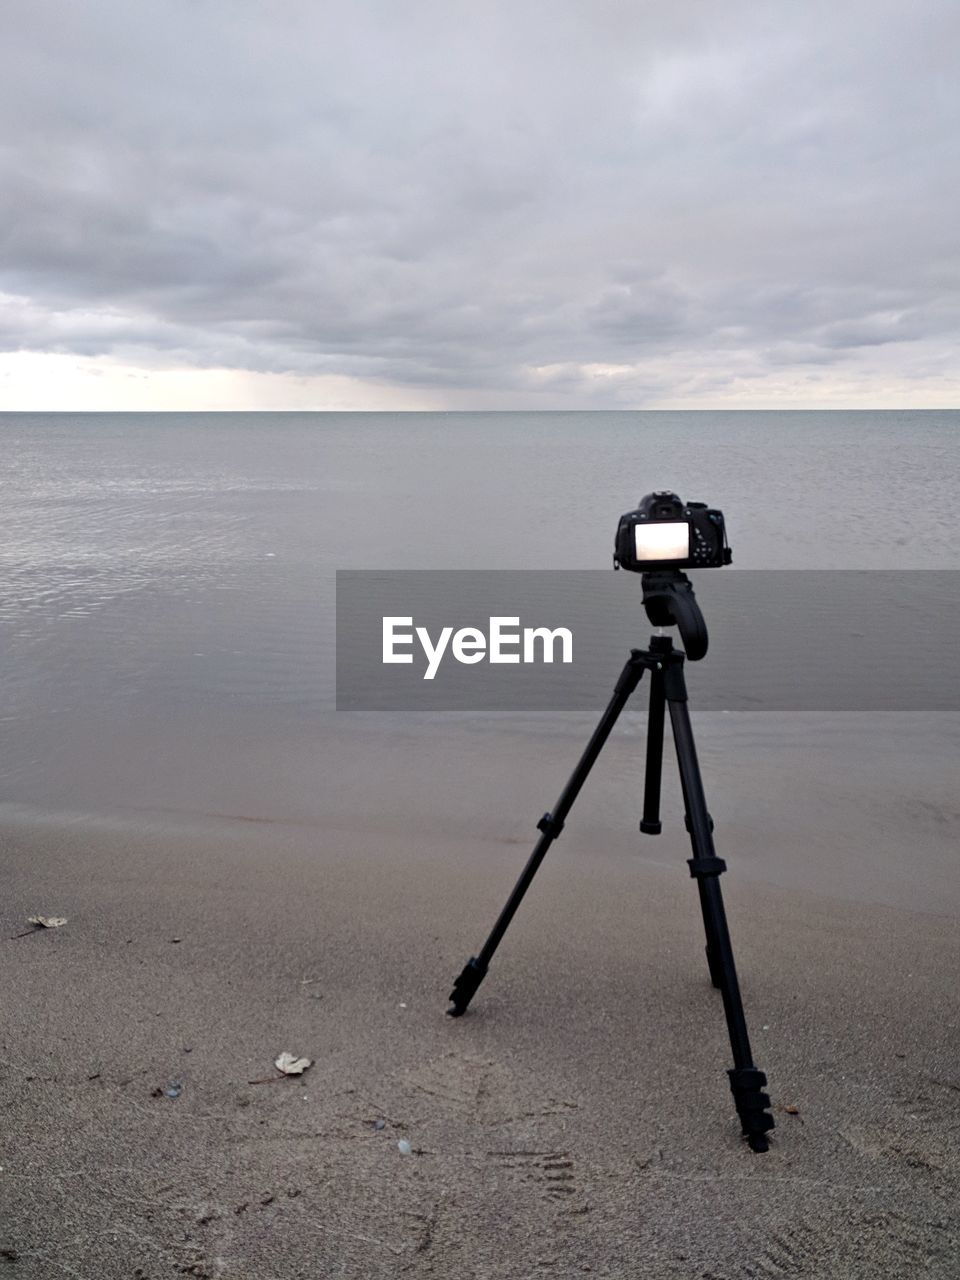 photography themes, camera - photographic equipment, technology, water, sky, photographic equipment, sea, cloud - sky, horizon, beach, land, tripod, camera, scenics - nature, digital camera, beauty in nature, horizon over water, tranquility, tranquil scene, no people, outdoors, slr camera, home video camera